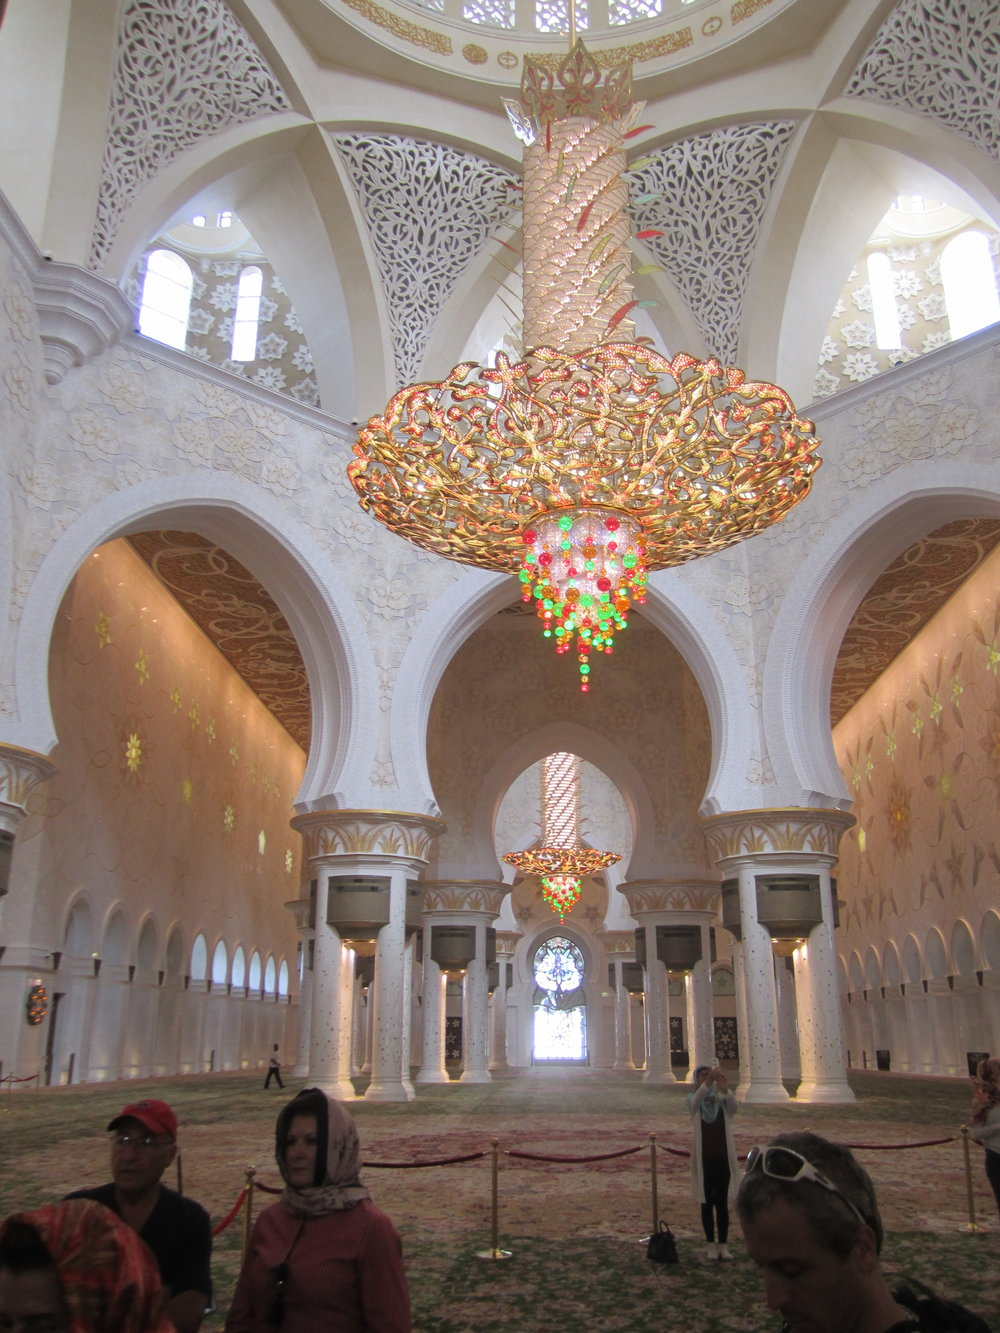 The largest Swarovski crystal chandelier in the world inside the Sheik Zayed Mosque in Abu Dhabi